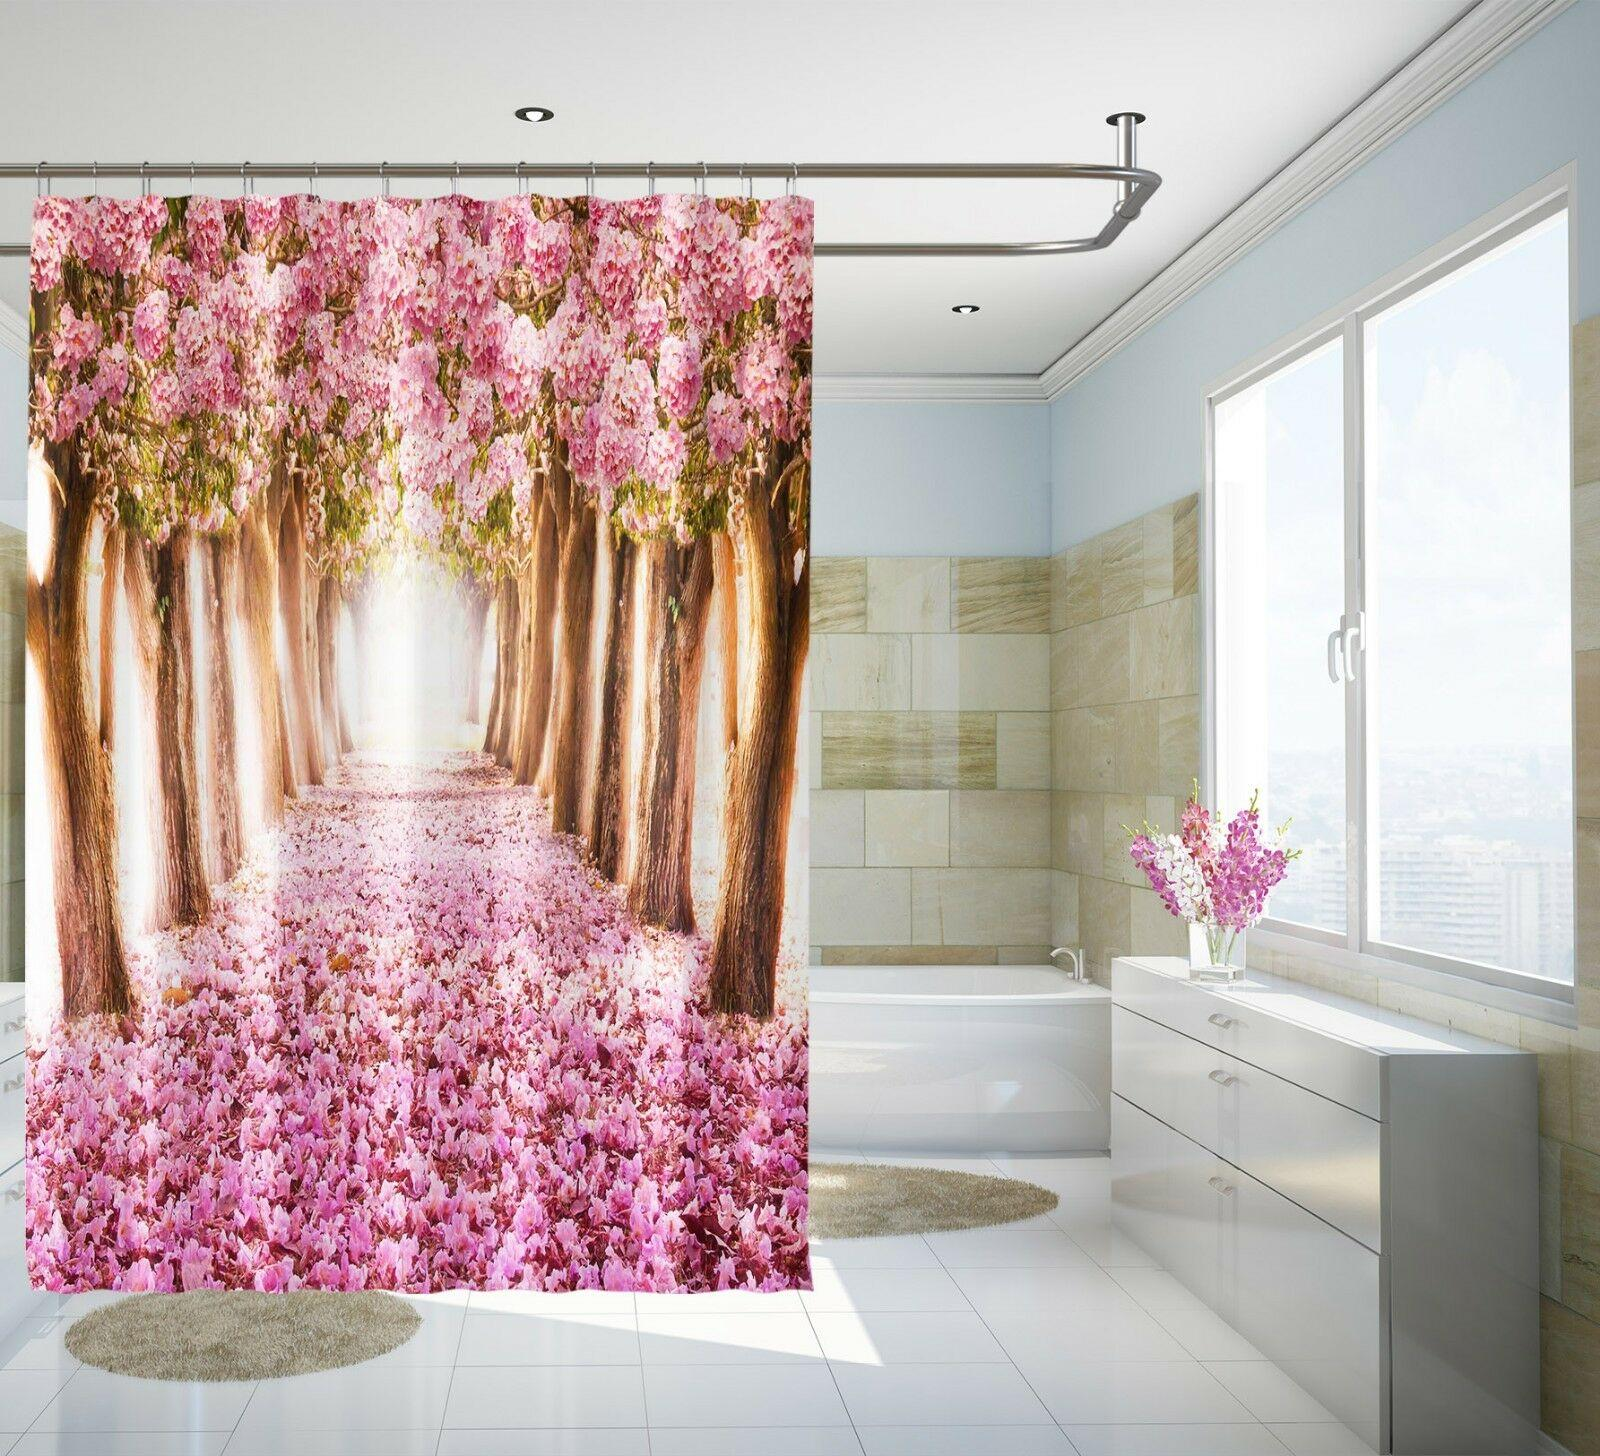 2019 3d Cherry Blossom 8 Shower Curtain Home Window Toilet Durable Fabric Mildew Bathroom Accessories Creative With 12 Hooks 180x180cm From